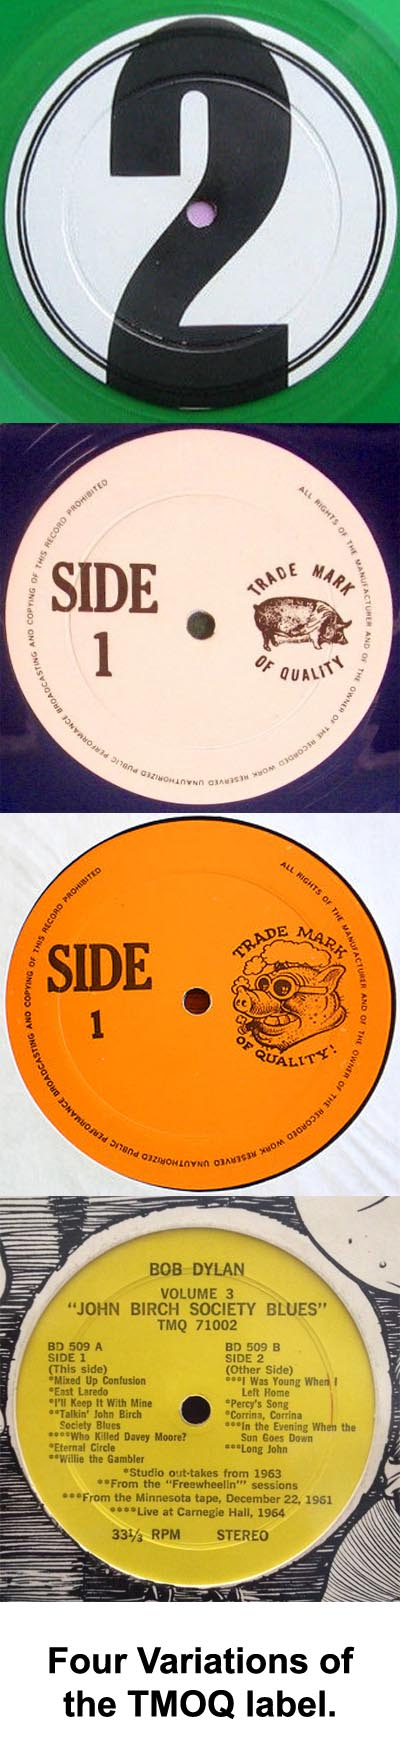 Various labels used by Trademark of Quality